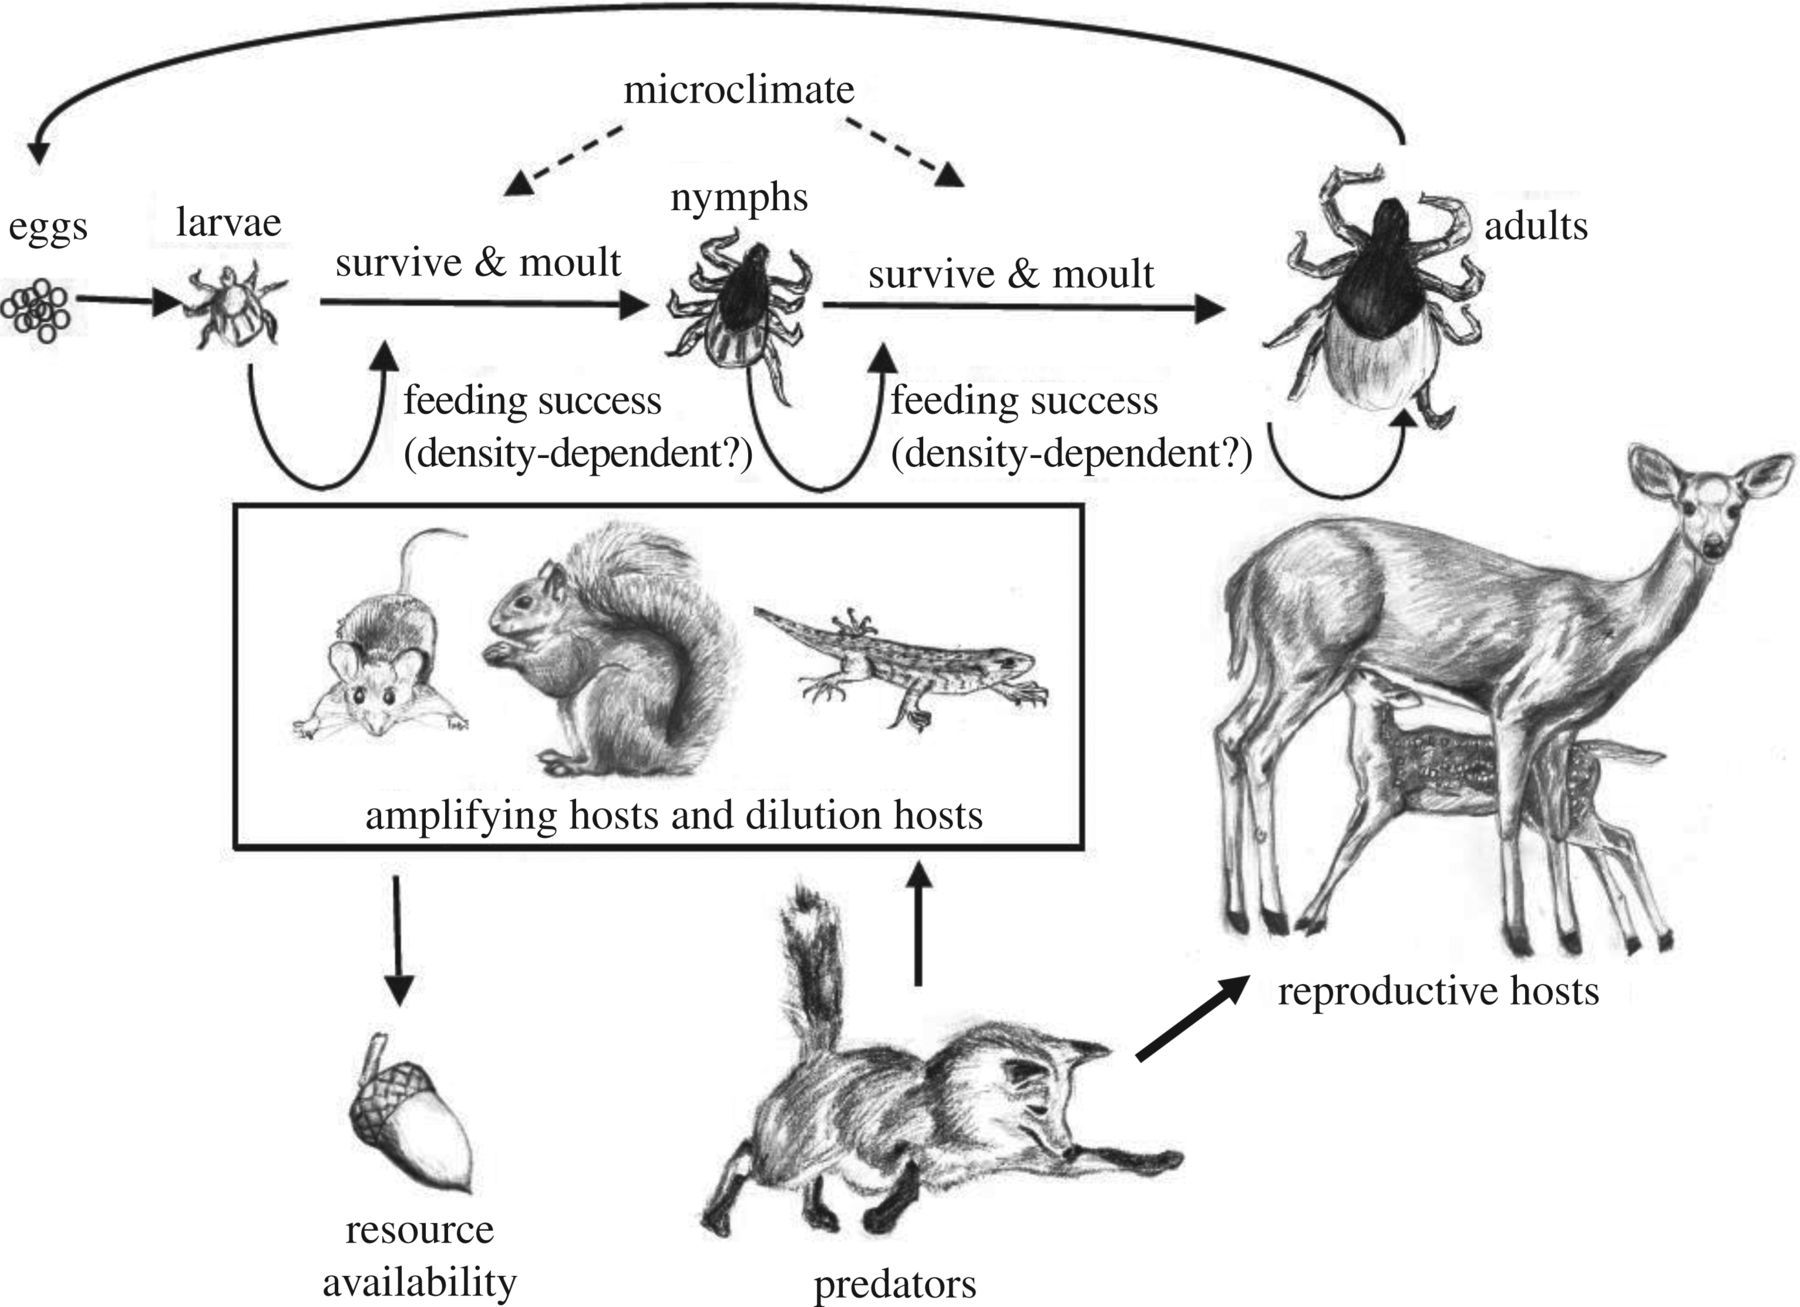 Lyme disease ecology in a changing world: consensus